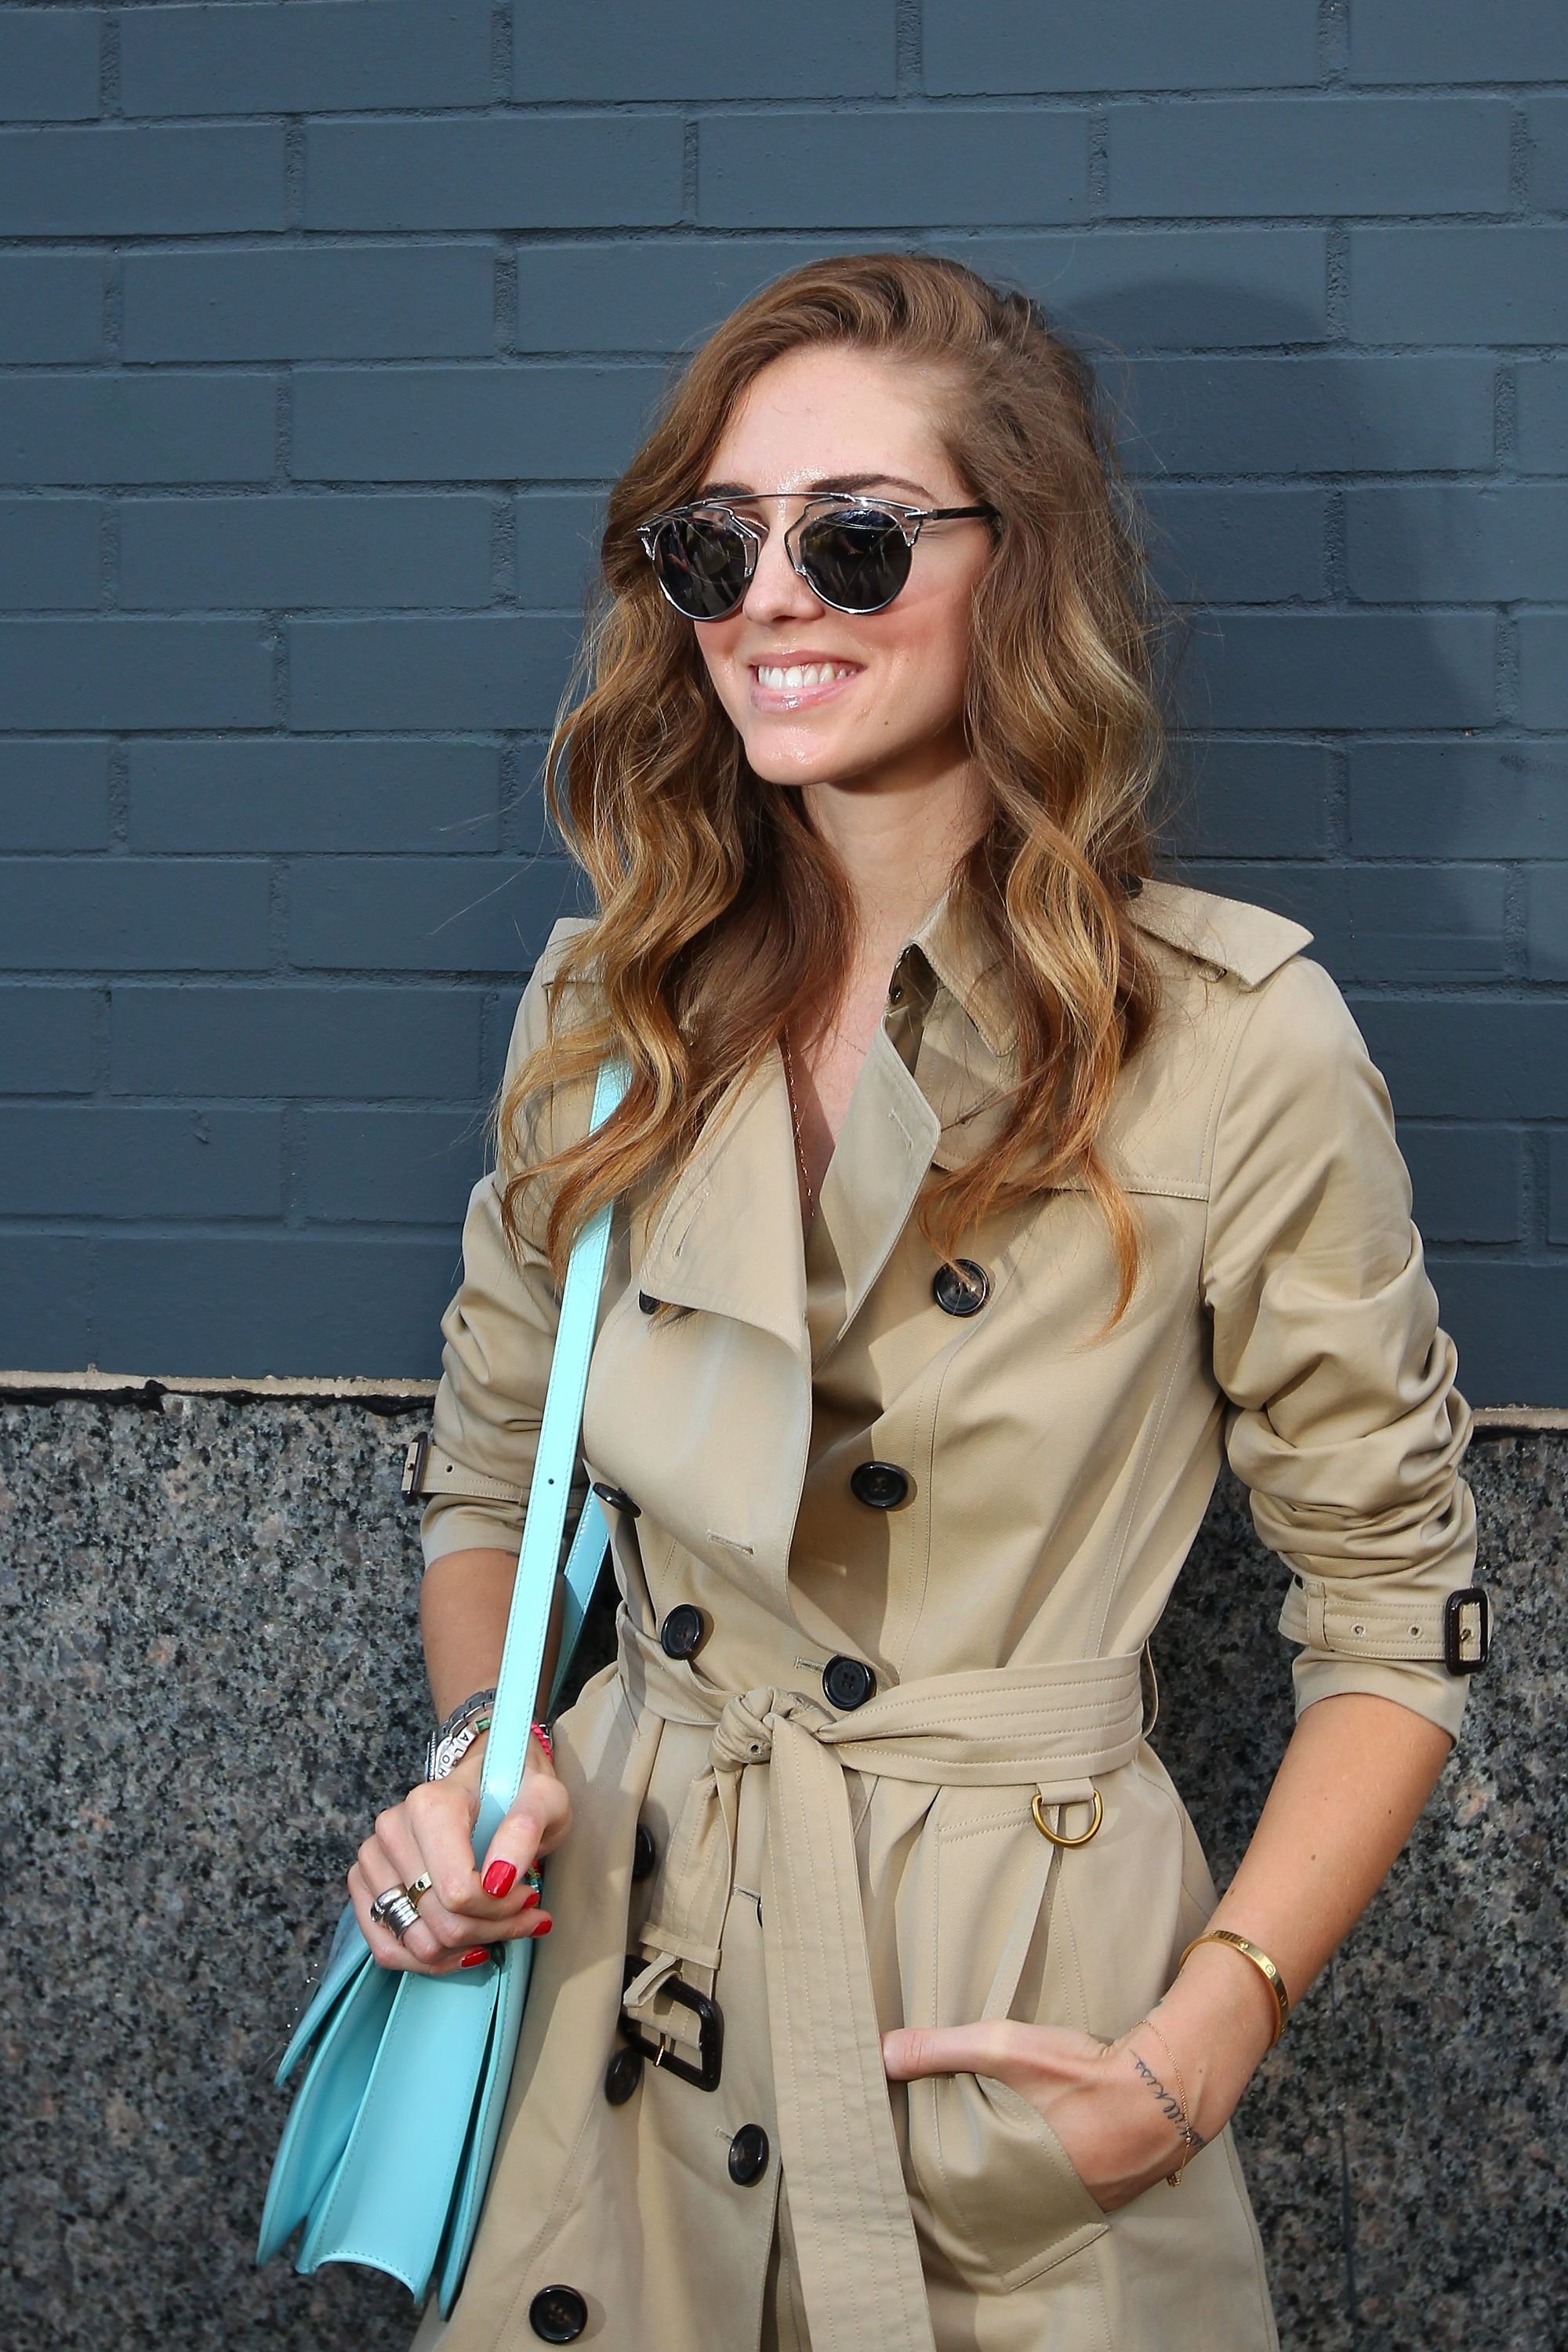 Spring showers are around the corner—it's time to talk trench coats.